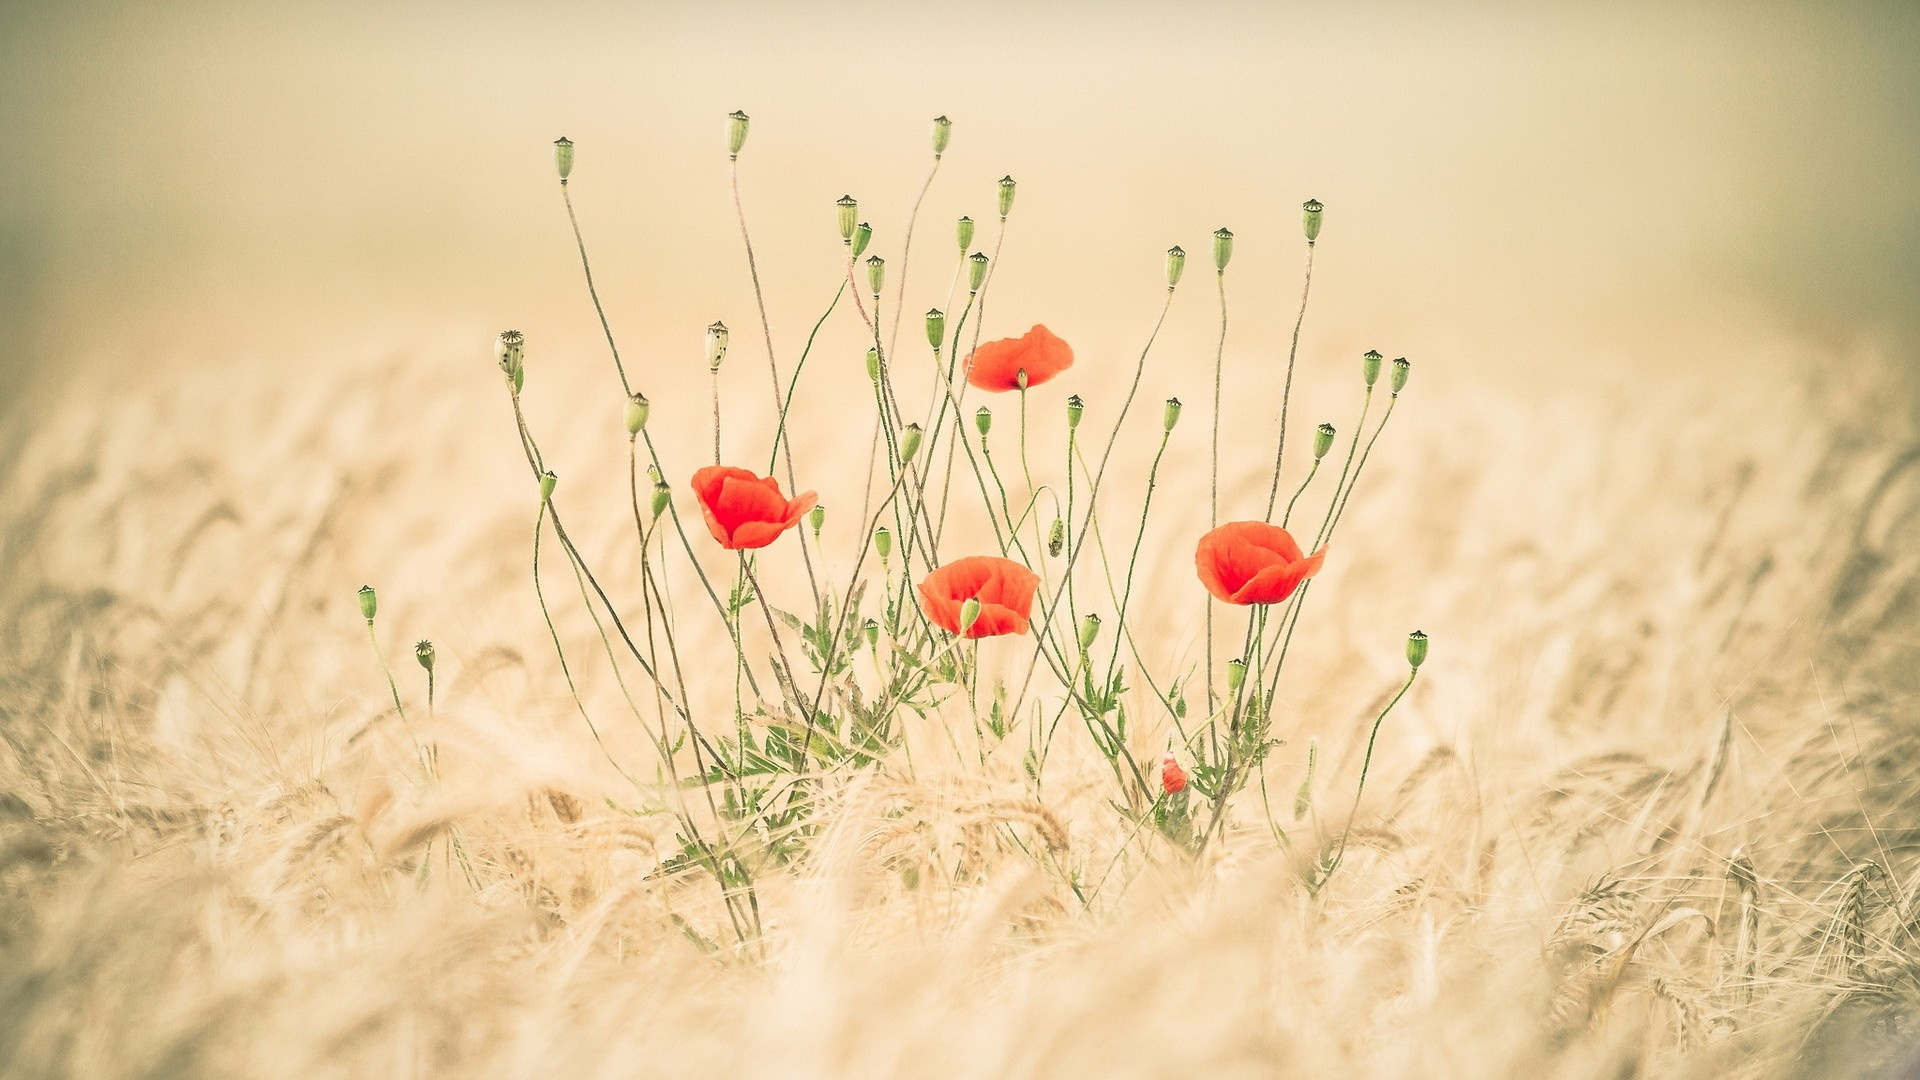 Poppies Flowers And Wheat Field Wallpapers  1920x1080